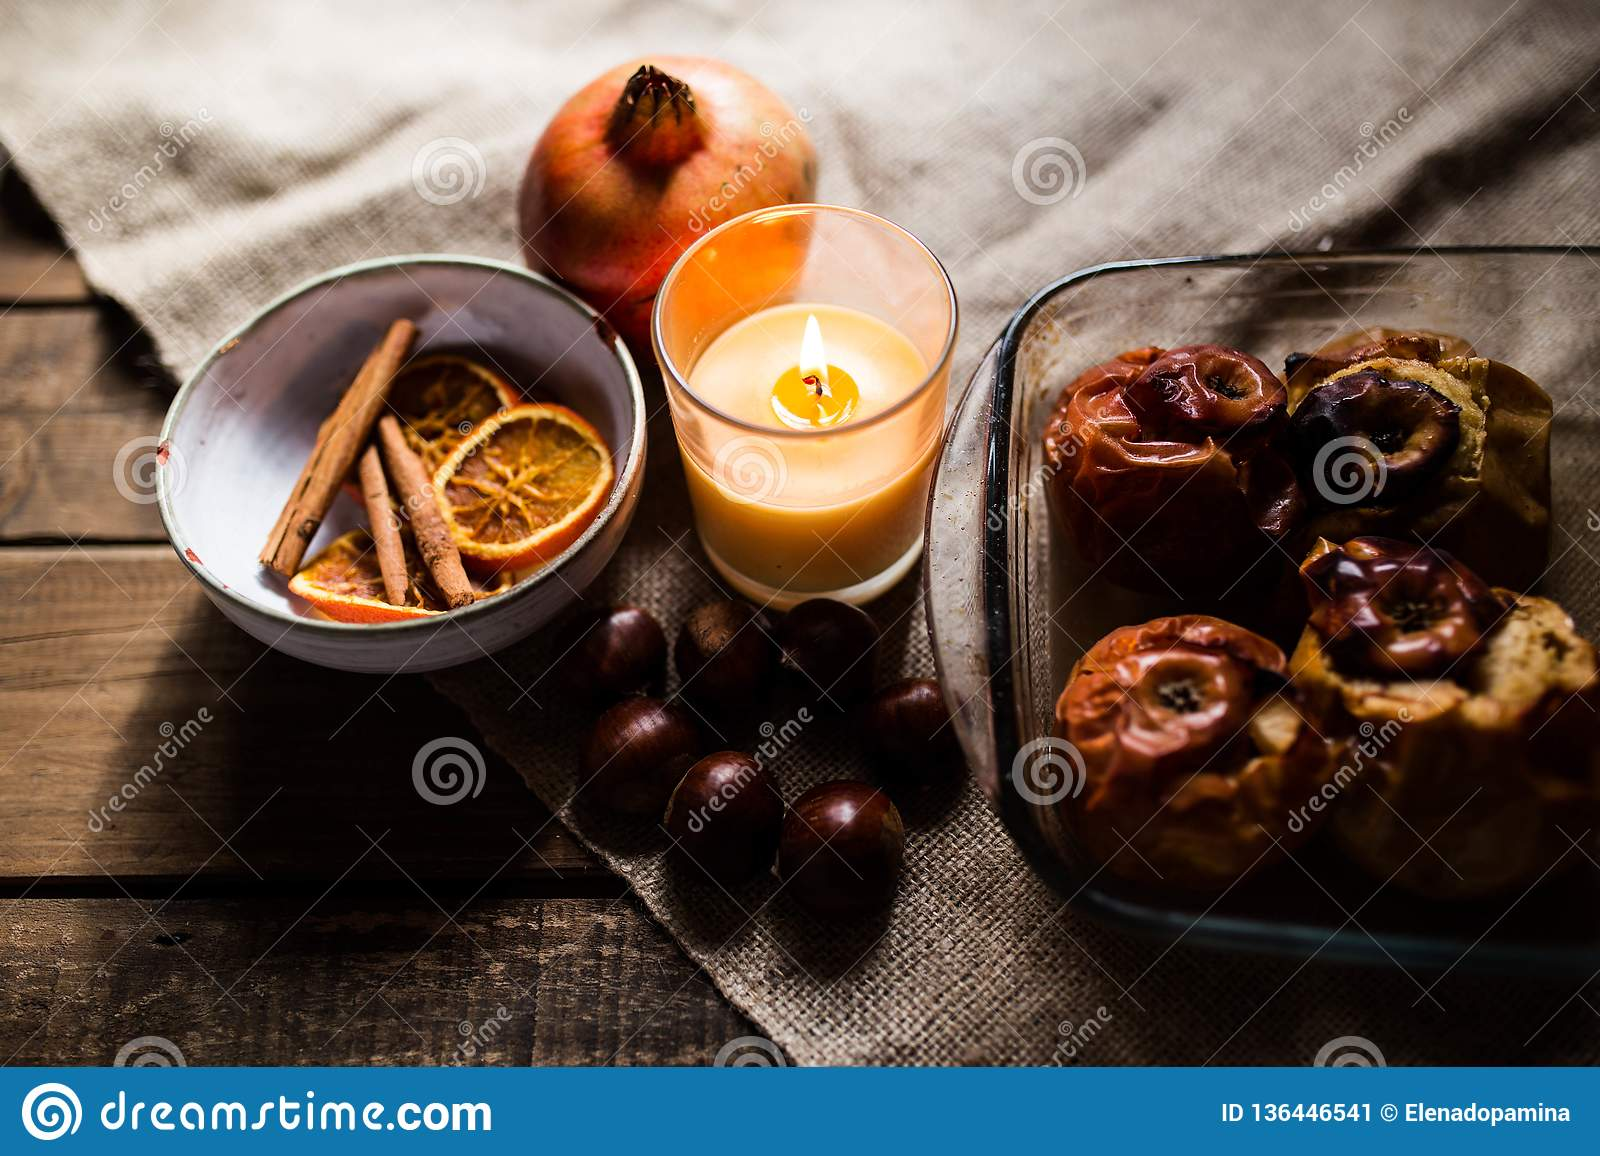 Roasted apples in a glass tray with chestnuts, cinnamon, orange and pomegranate